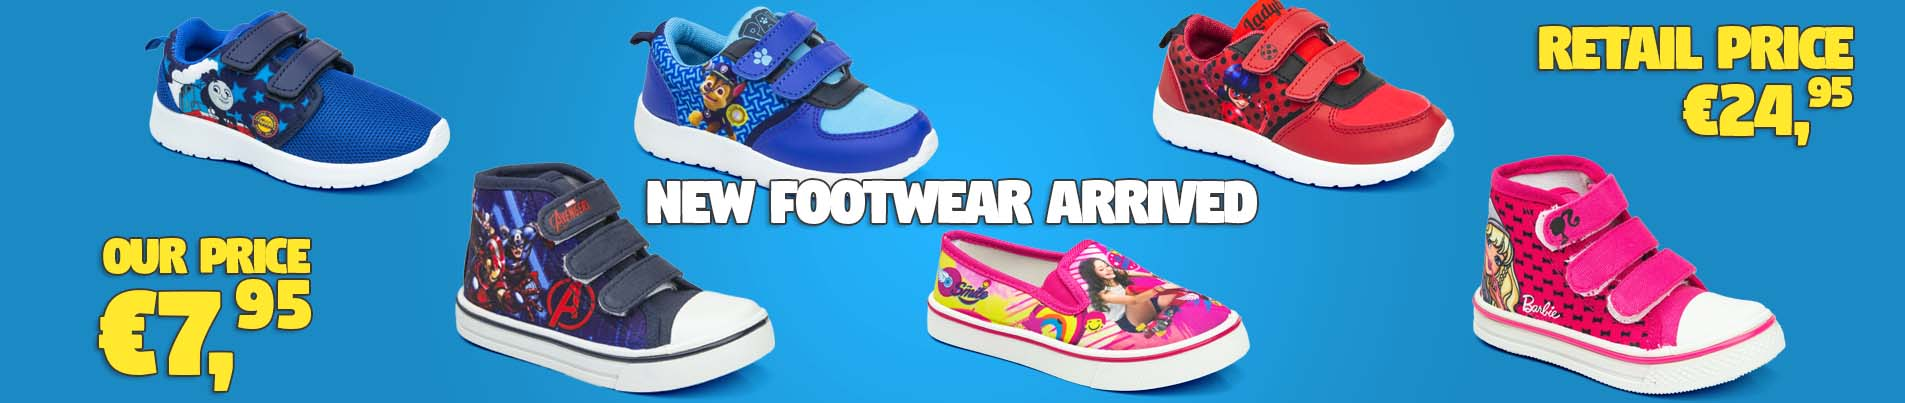 Footwear for kids wholesale.